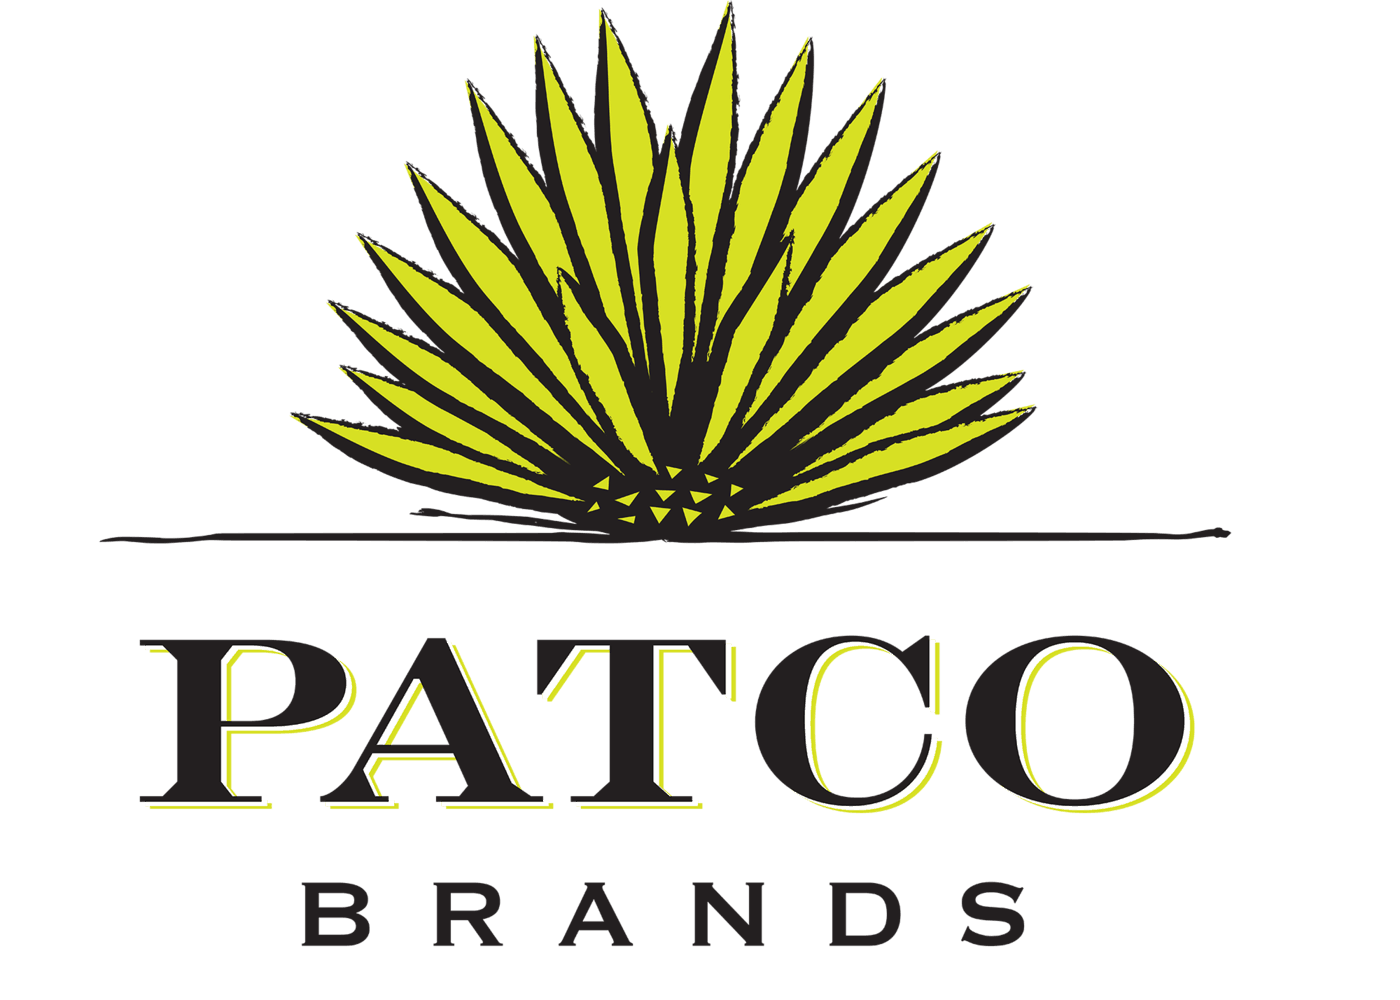 Patco Brands